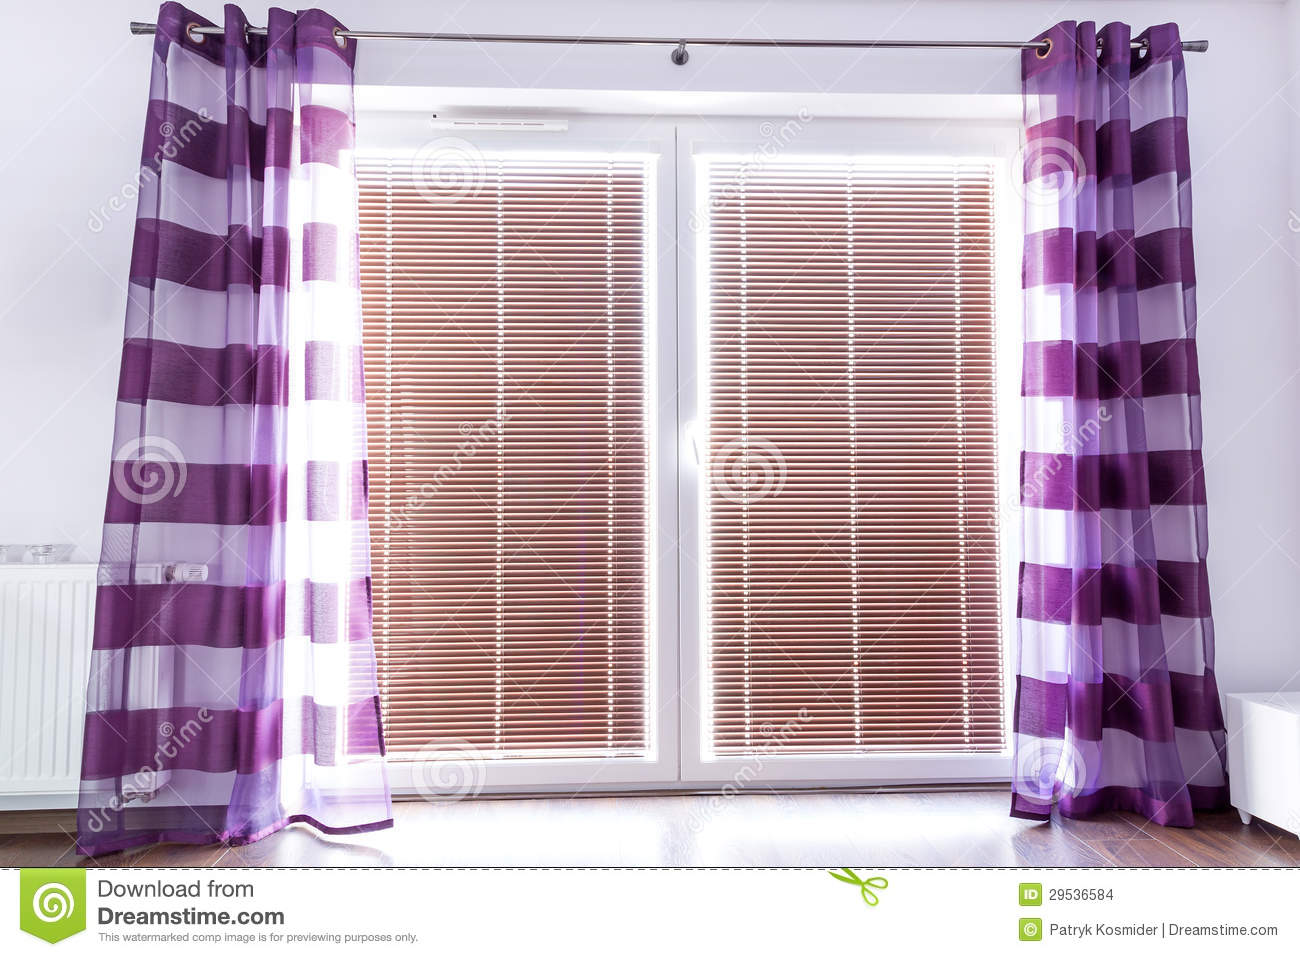 china style european curtain purple jacquard luxury wholesale countrysearch alibaba striped cn curtains